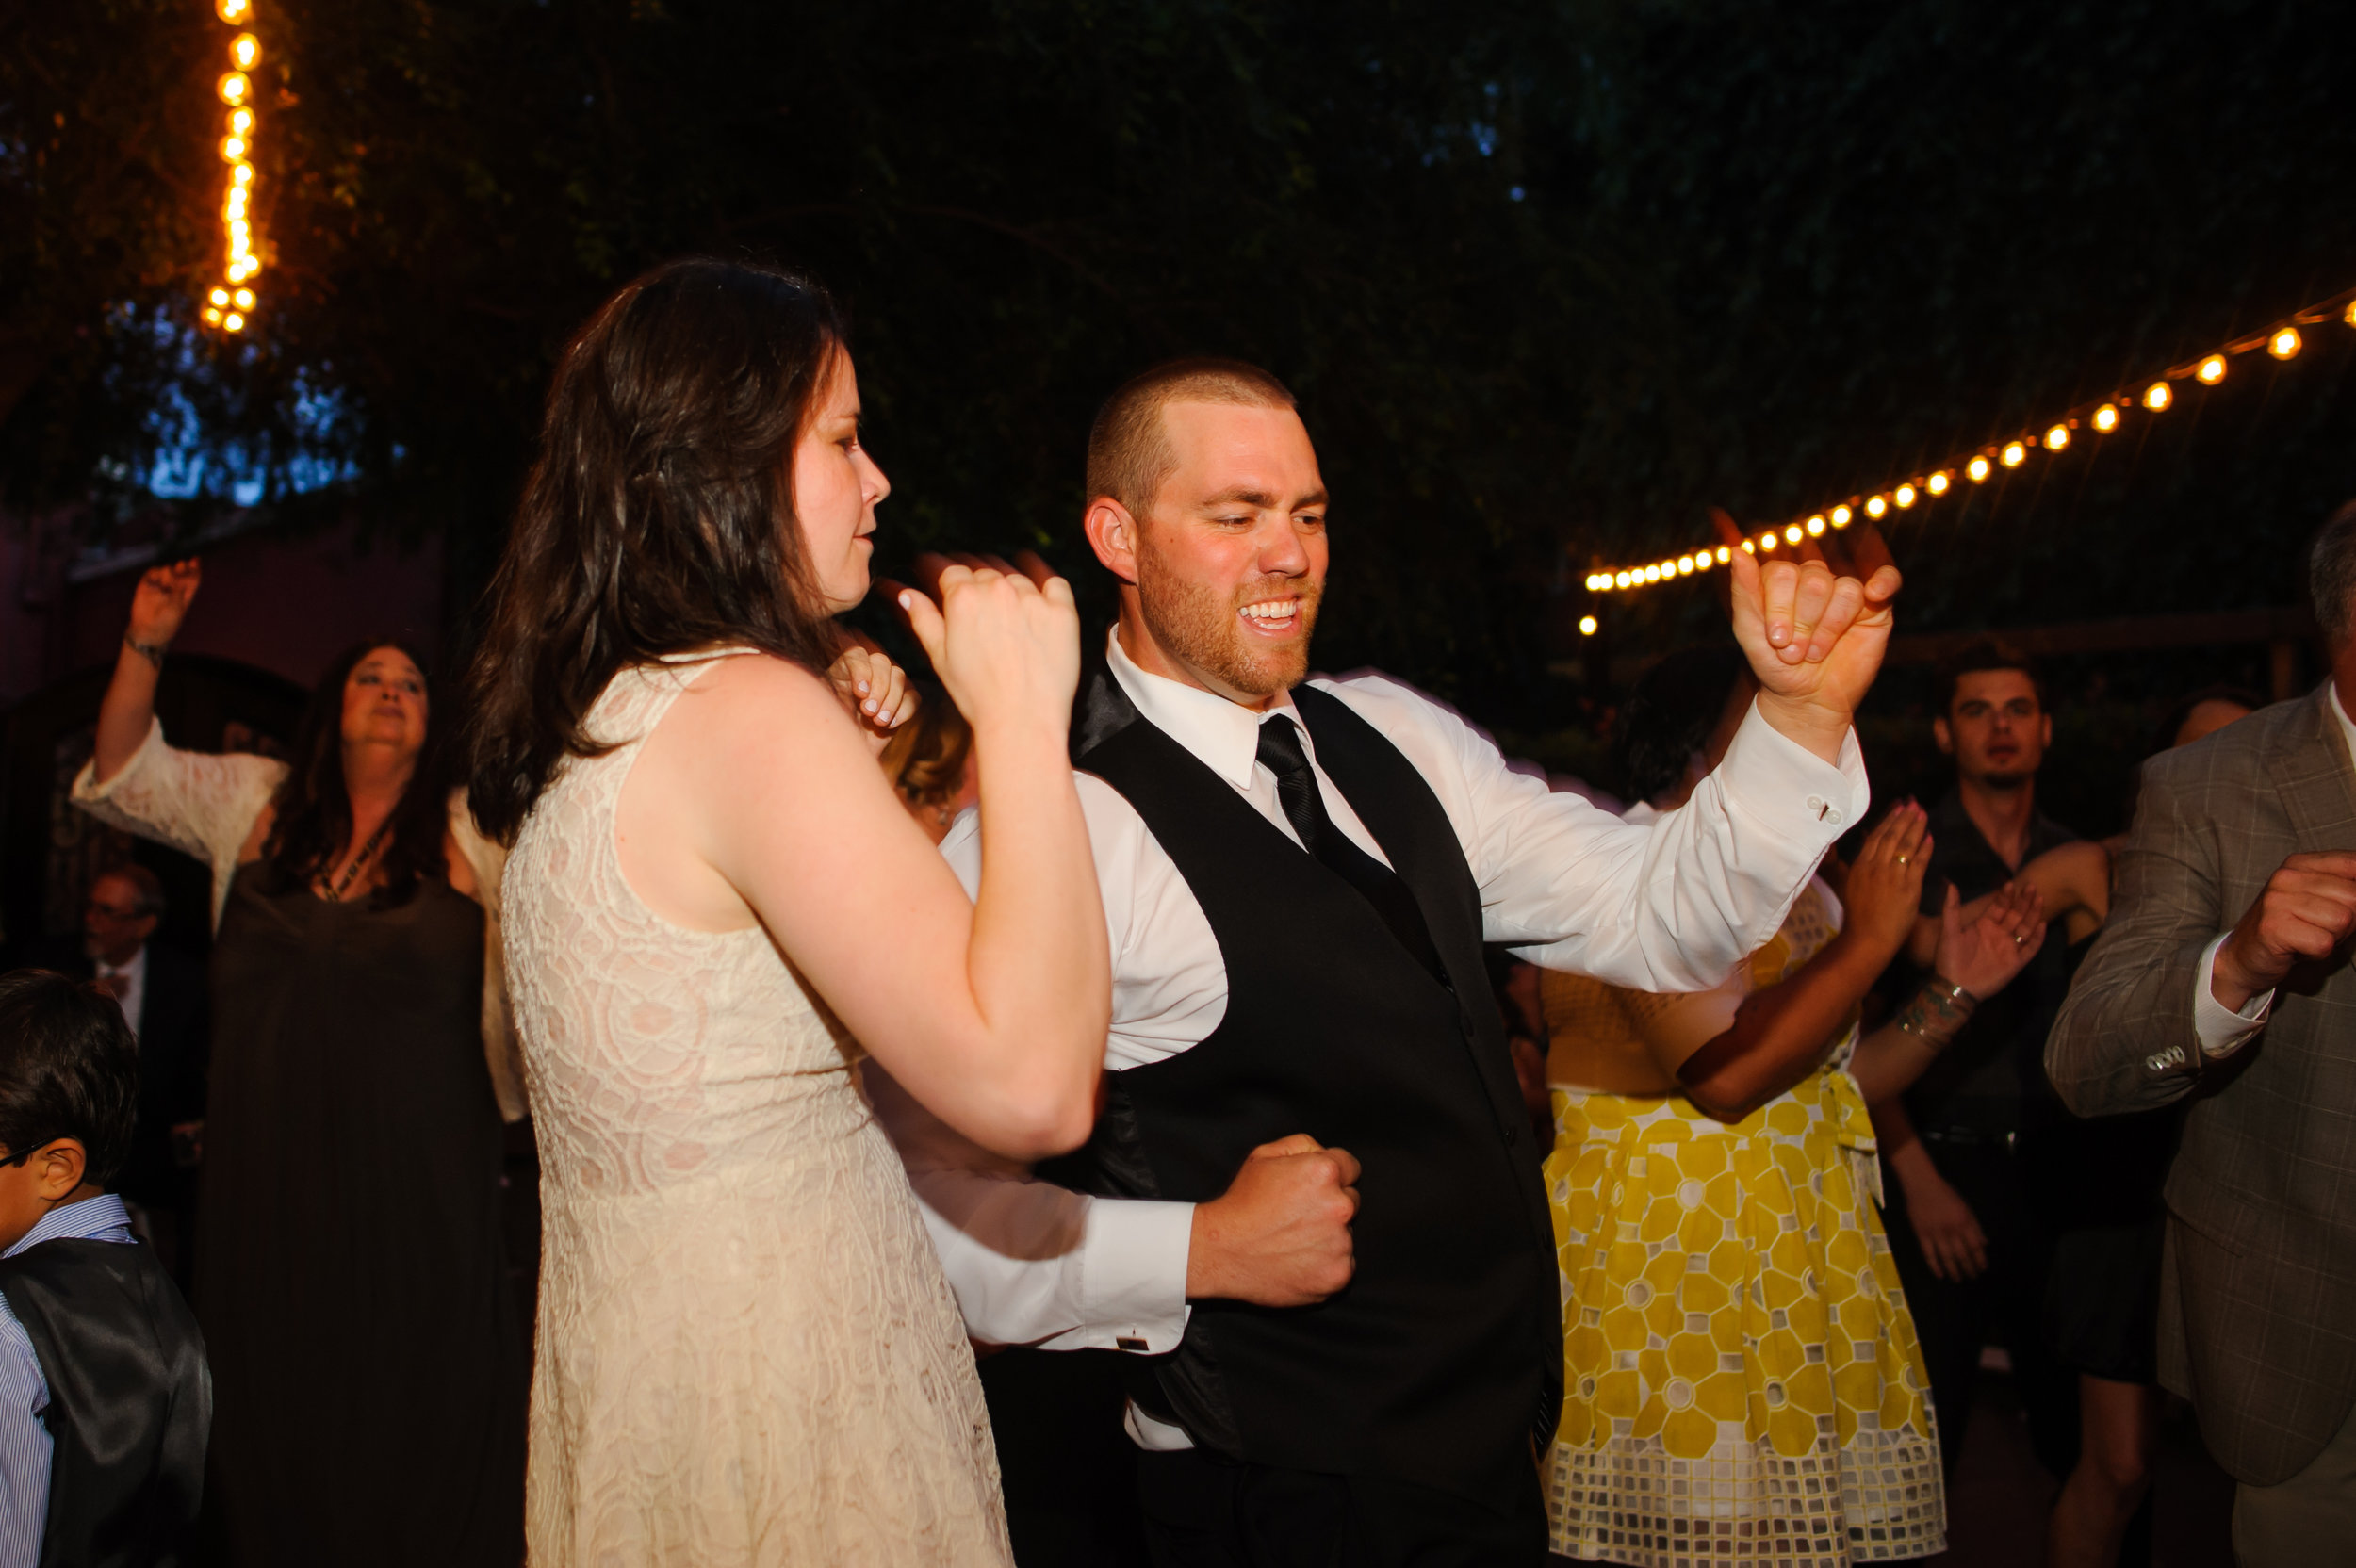 jenelle-brian-001-courtyard-d'oro-old-sacramento-wedding-photographer-katherine-nicole-photography043.JPG